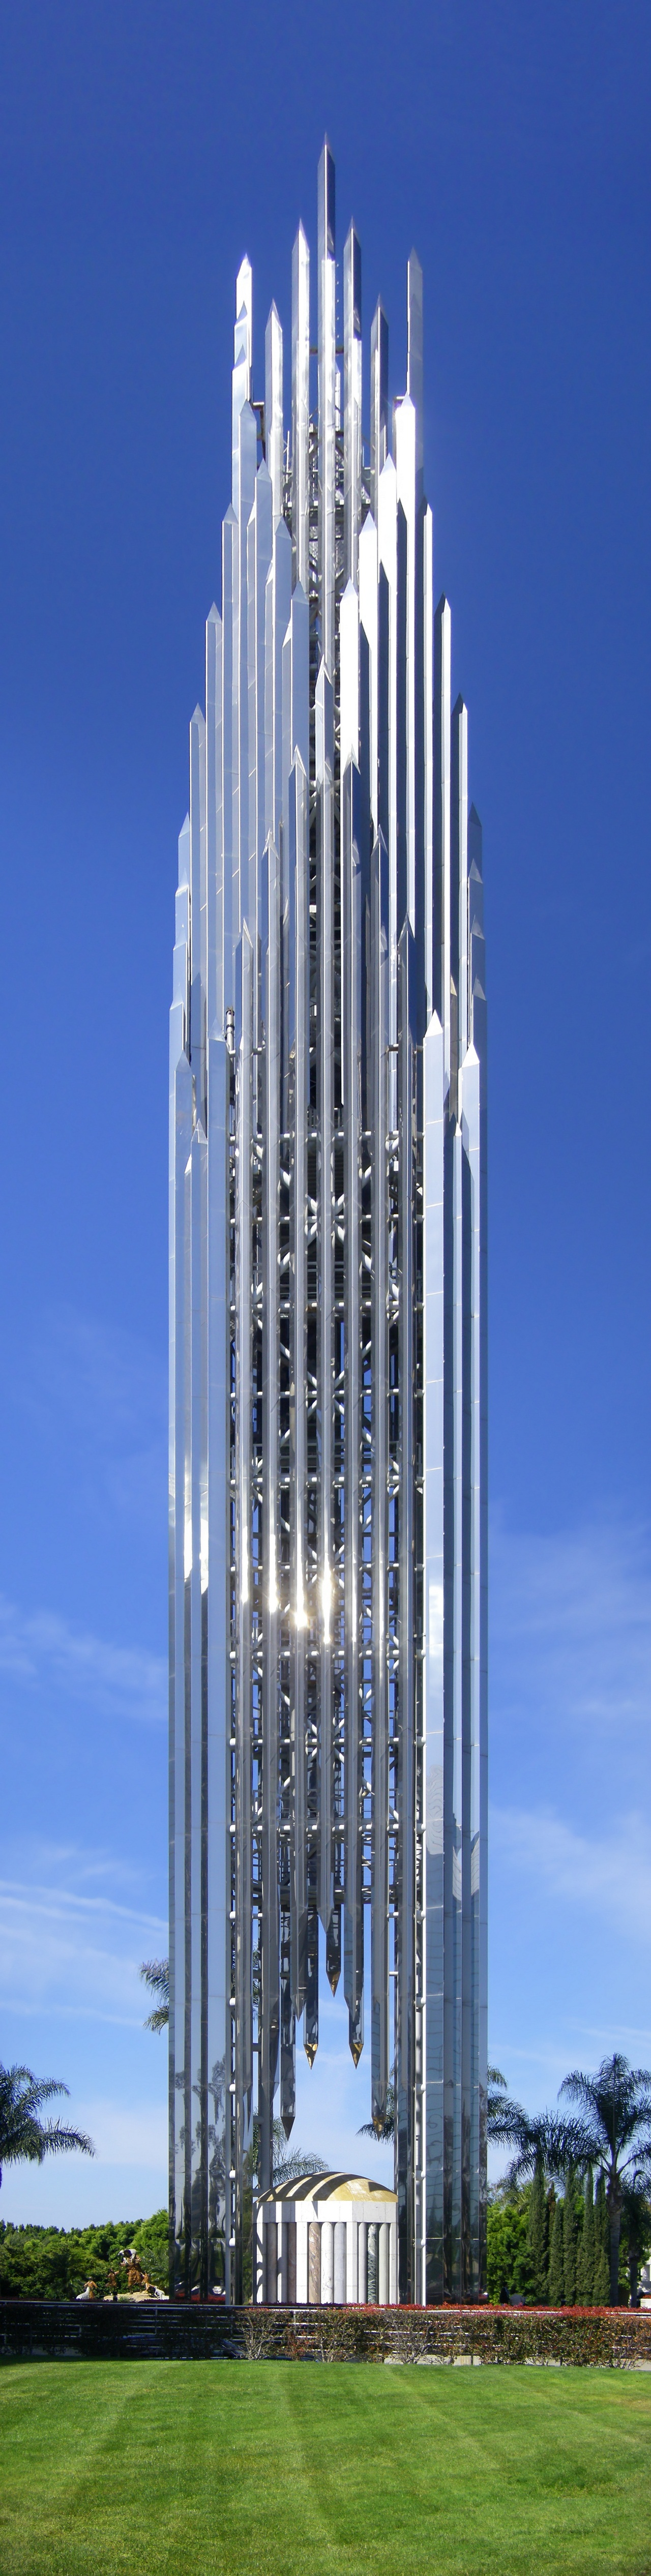 The spire of the Crystal Cathedral, Garden Grove (Anaheim, Los Angeles). Composite image from 5 individual images. (C) 2009 [http://commons.wikimedia.org/wiki/User:Wattewyl Wikimedia user